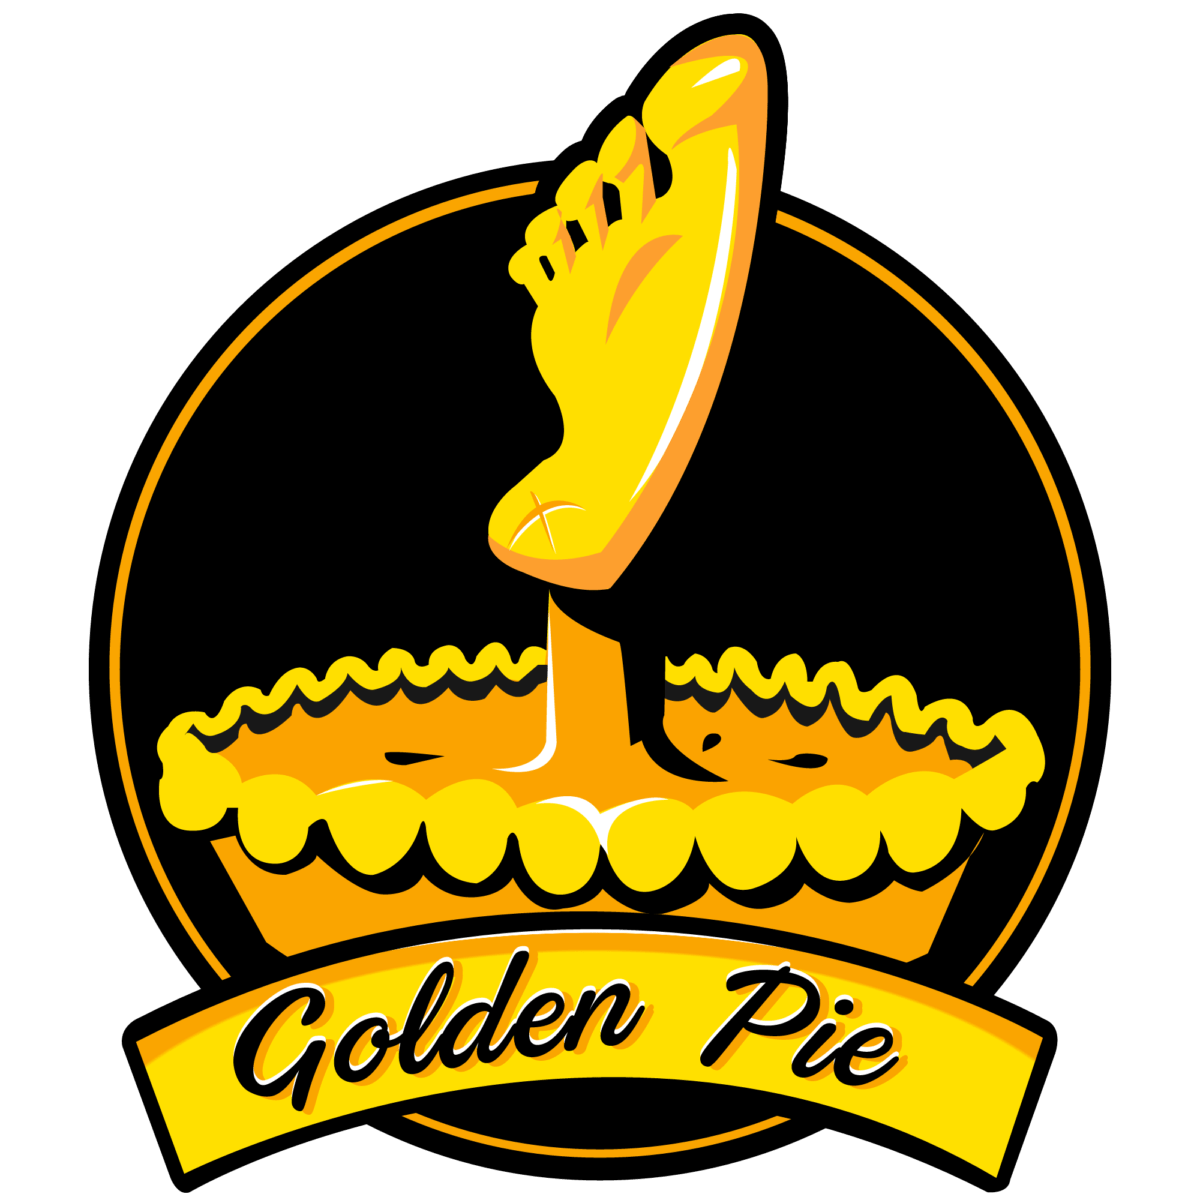 Golden Pie